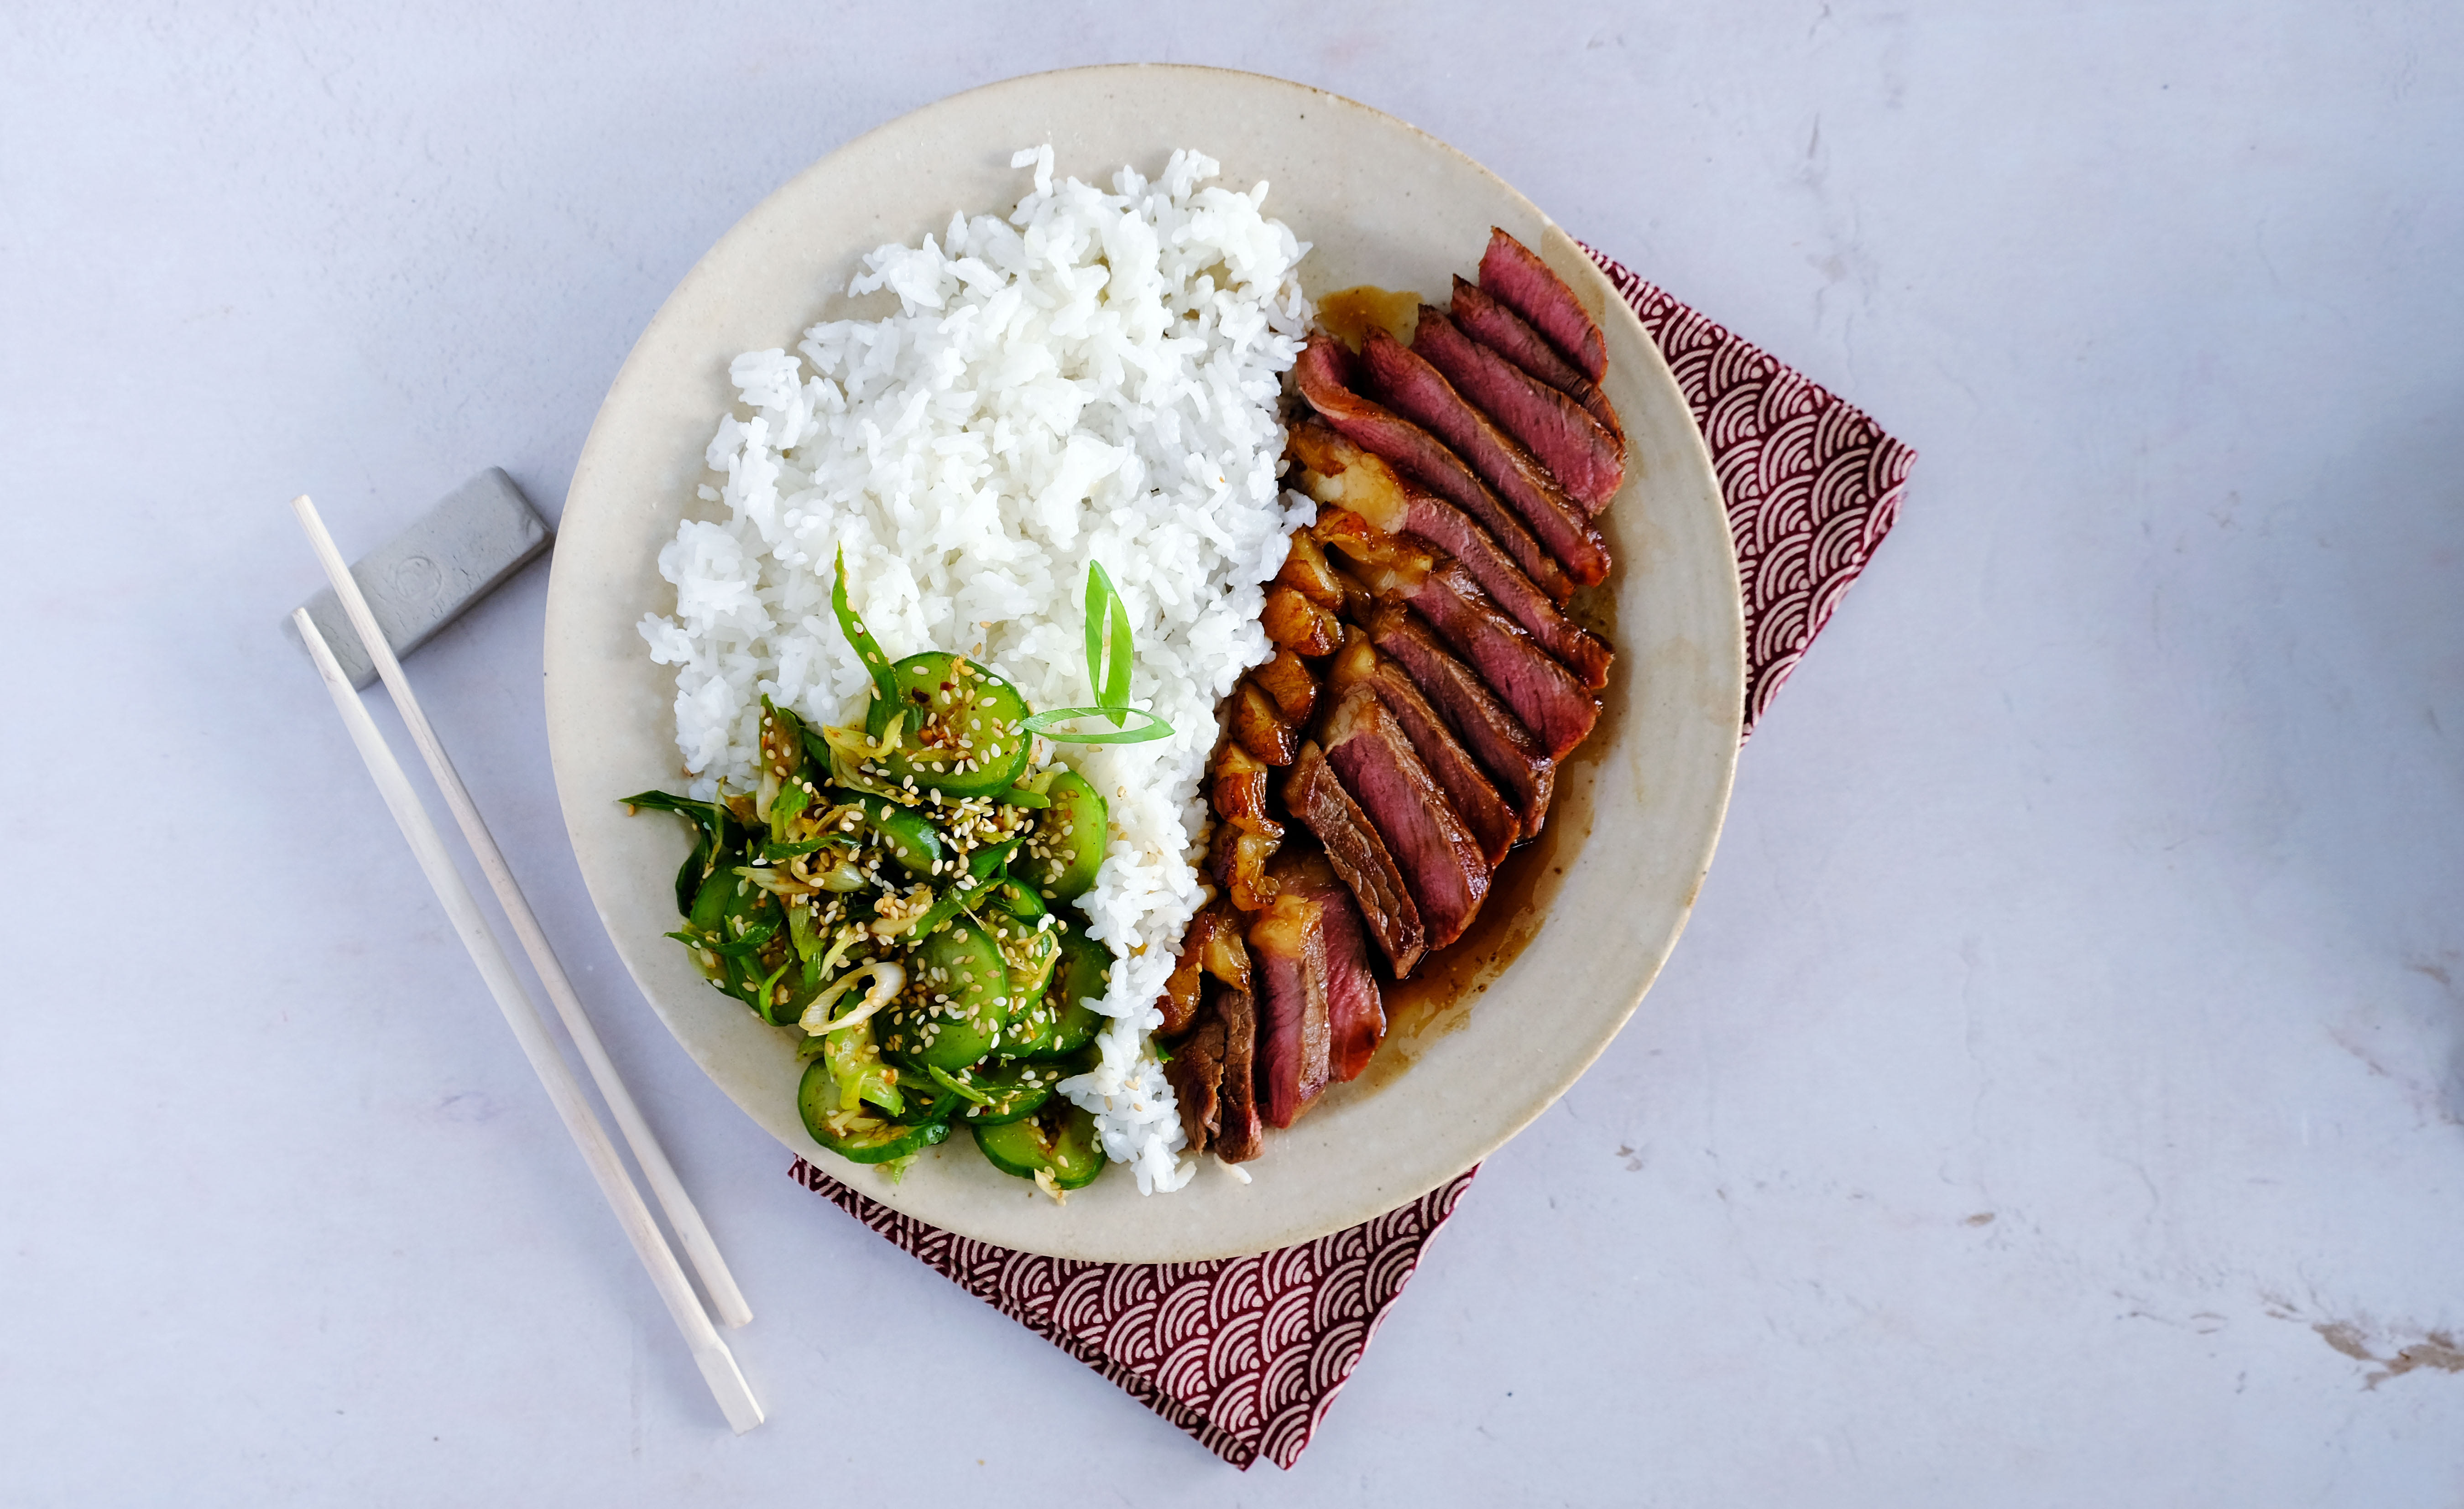 Soy-Glazed Steak with Cucumber Salad and Rice